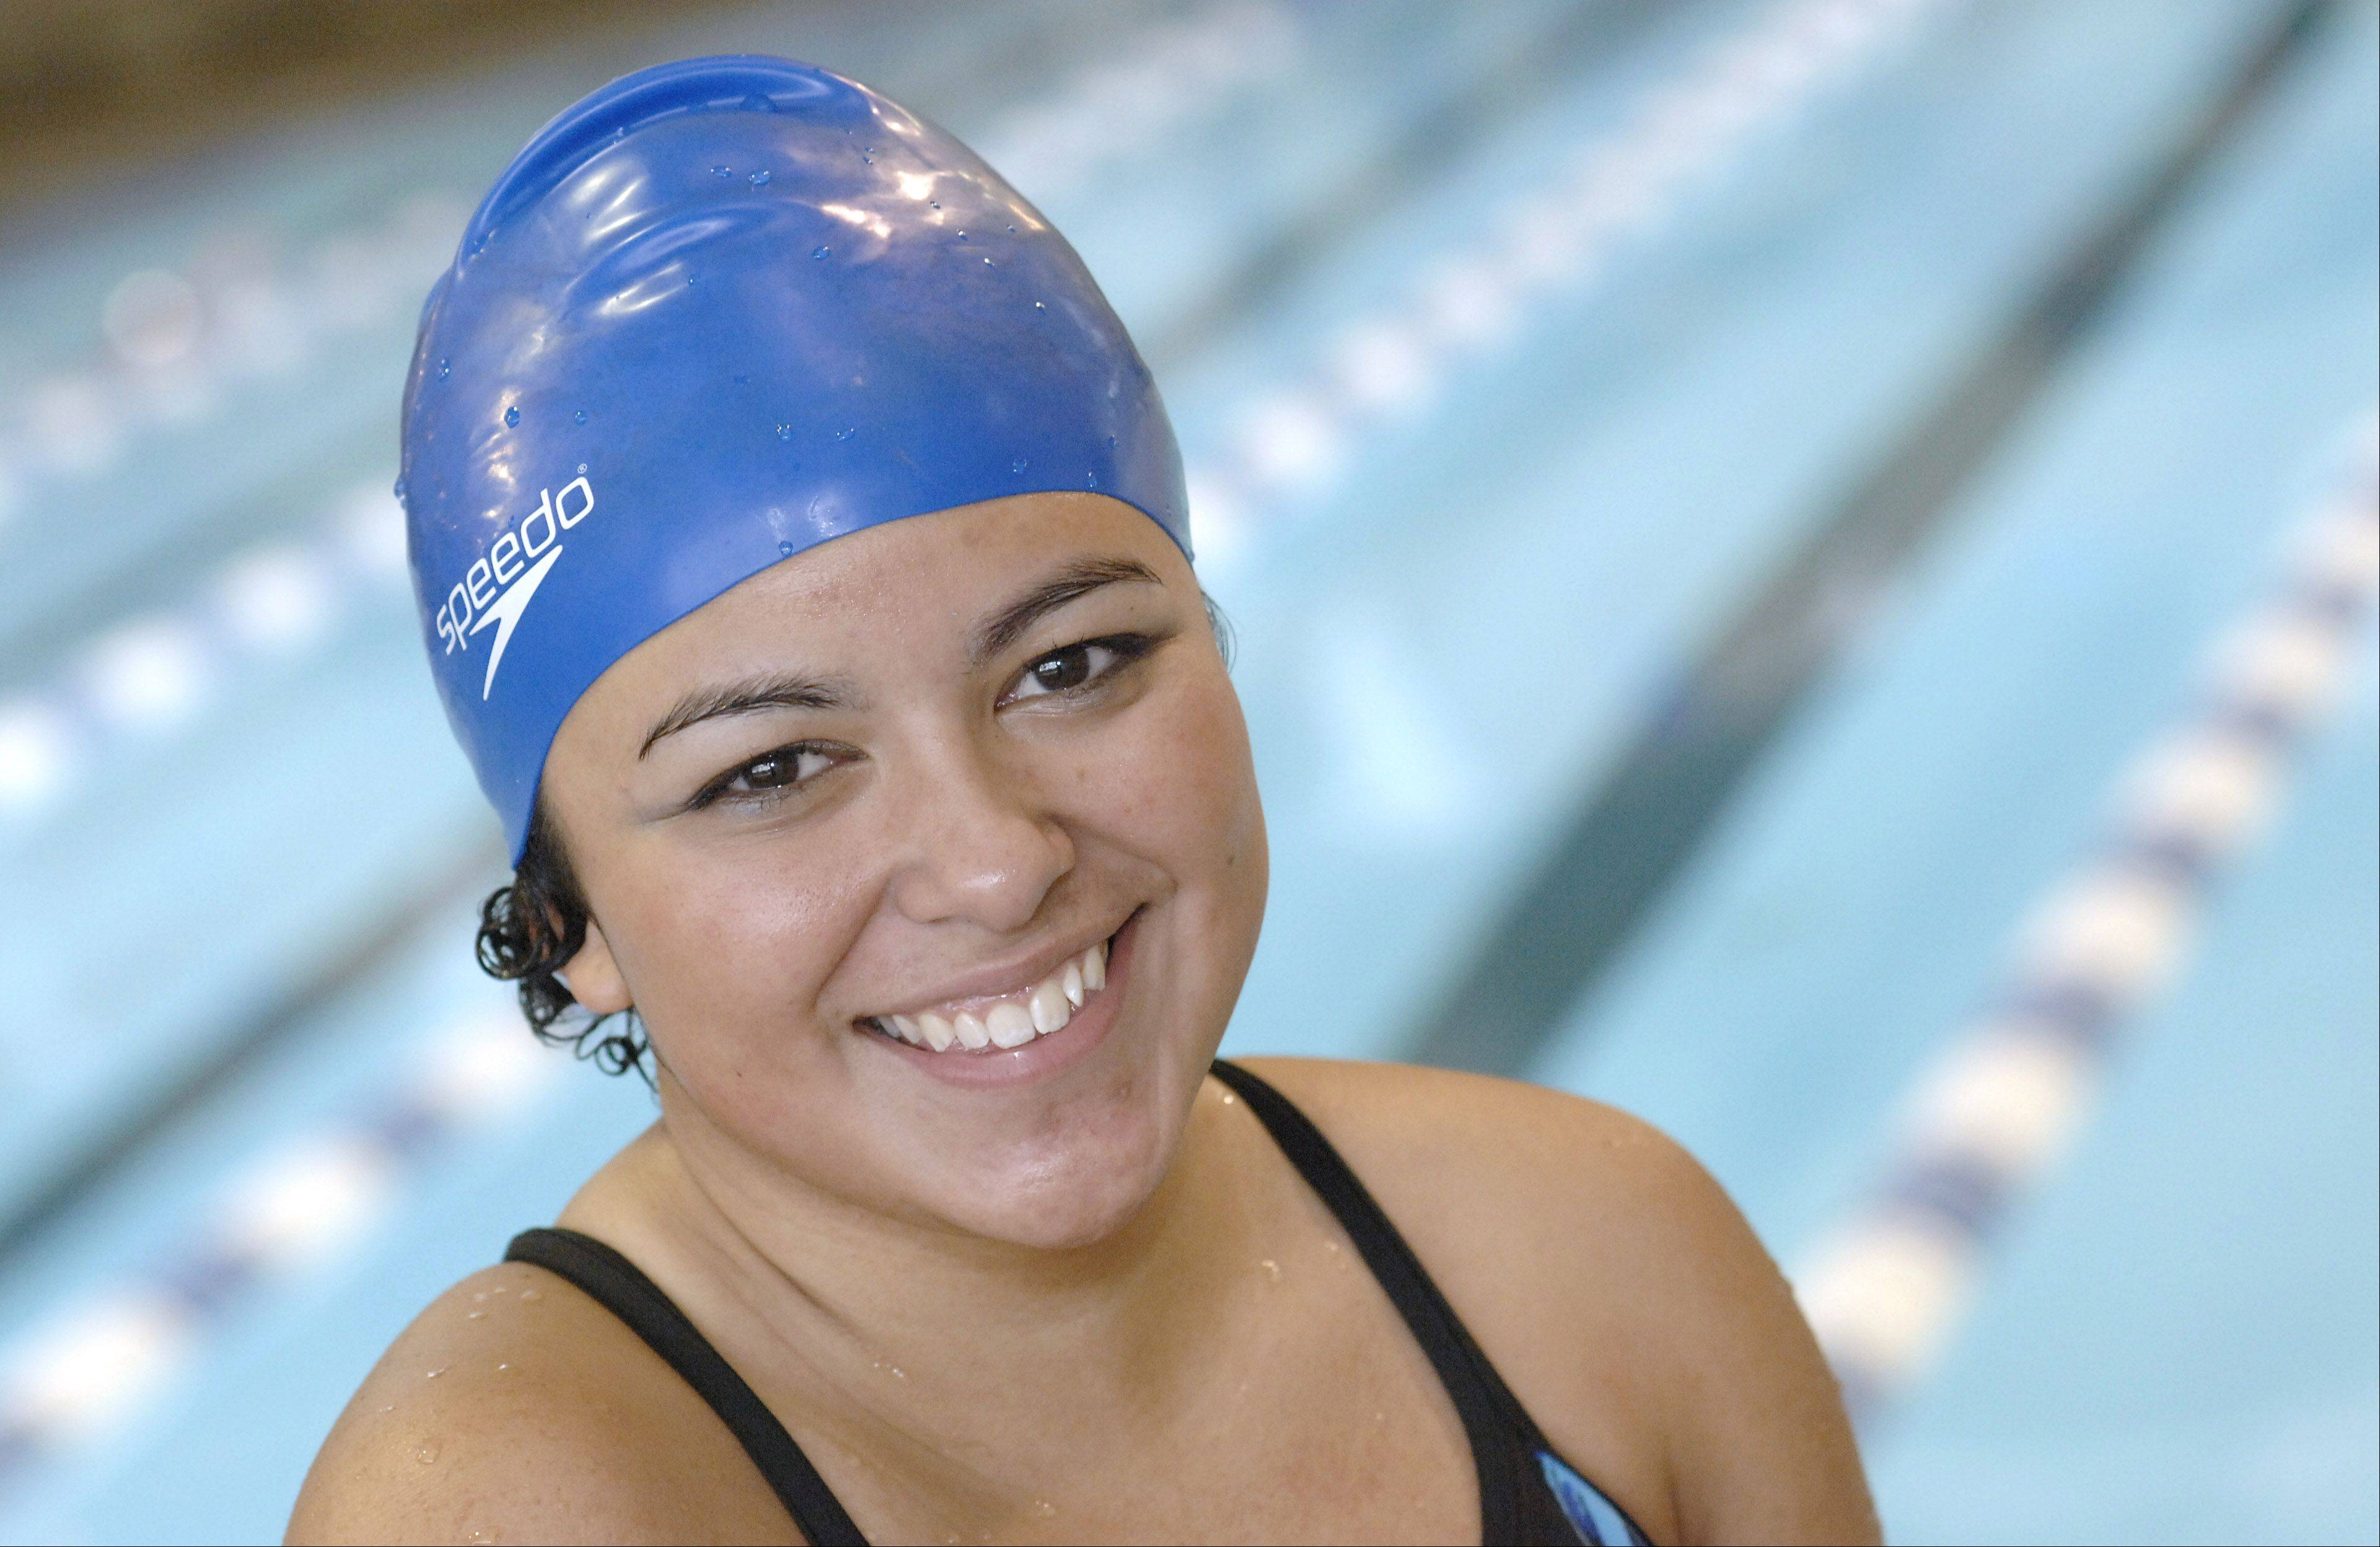 Dundee-Crown�s Samantha Sanchez is back on the school swimming team after beating leukemia into remission.